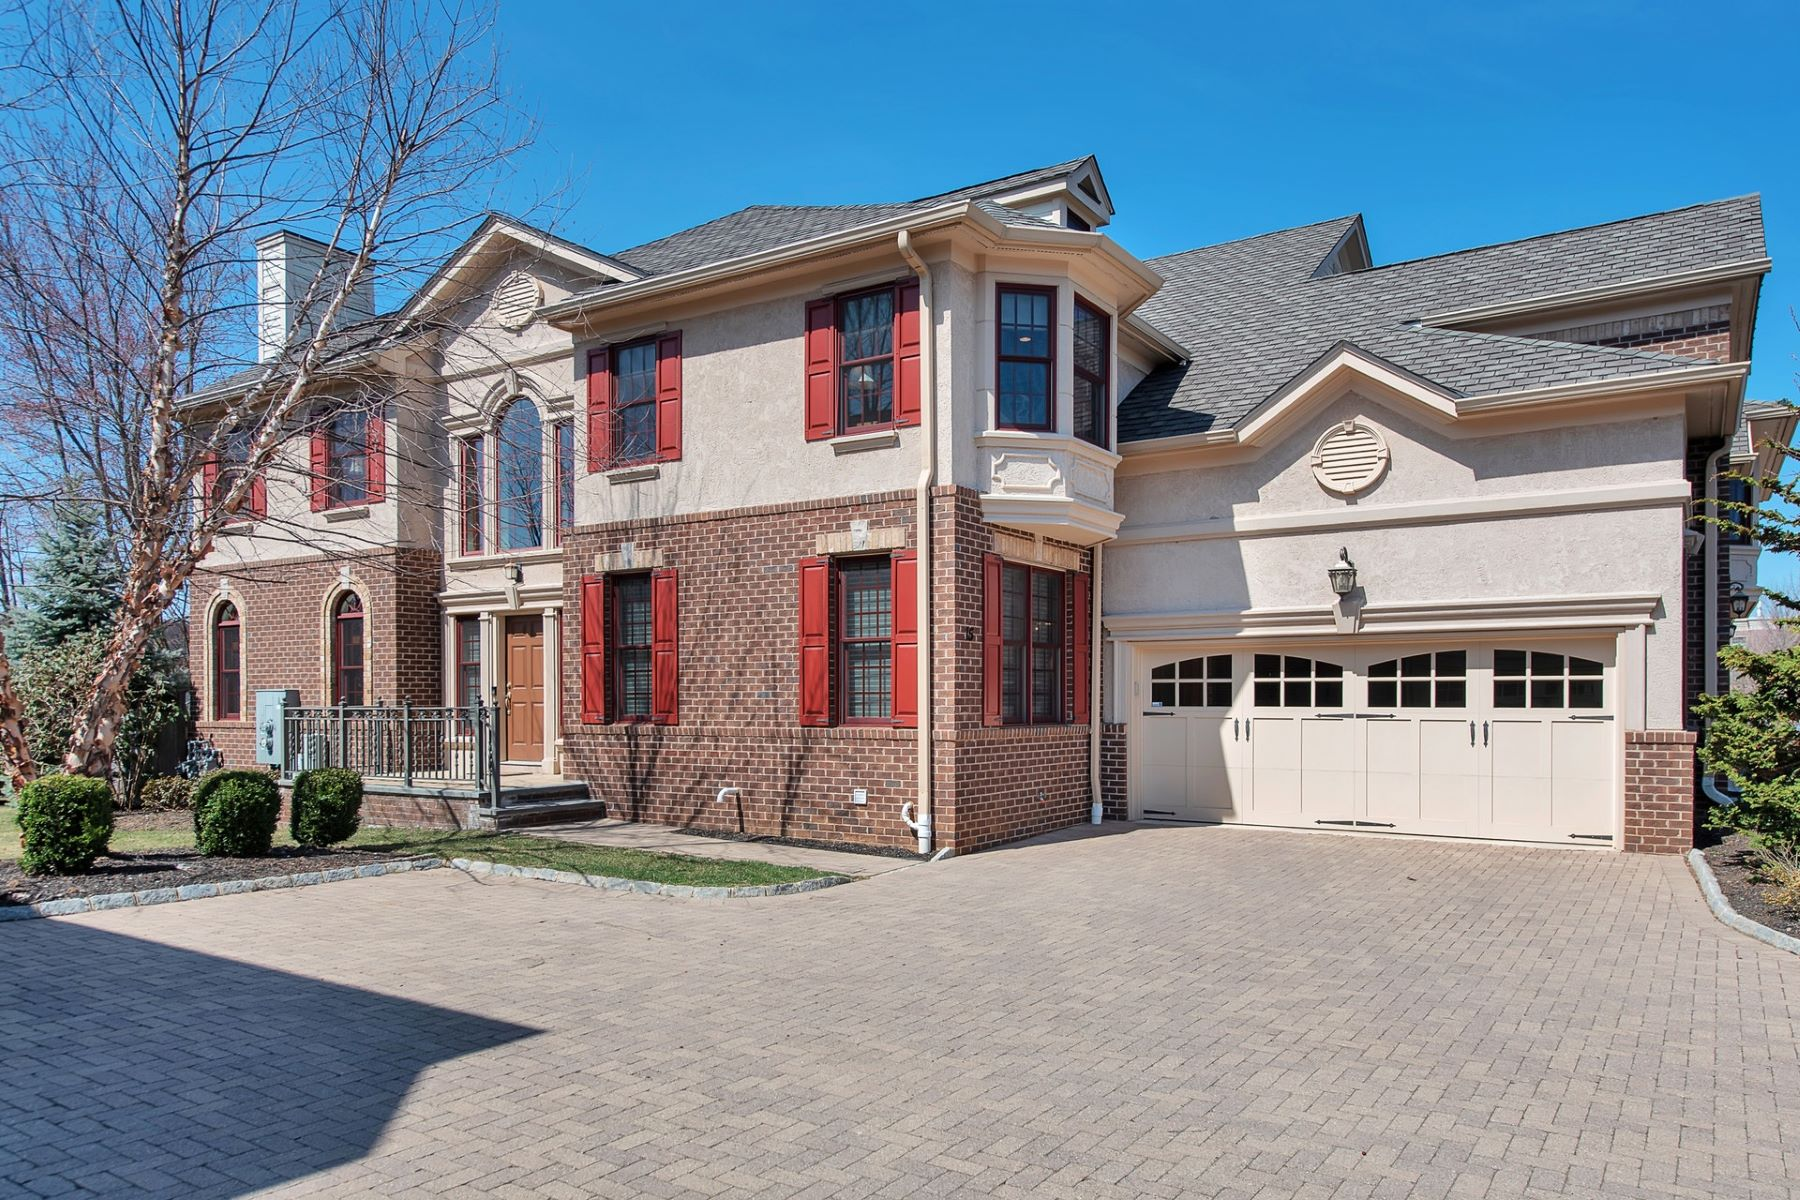 townhouses for Sale at Spacious And Bright 15 Green Way New Providence, New Jersey 07974 United States